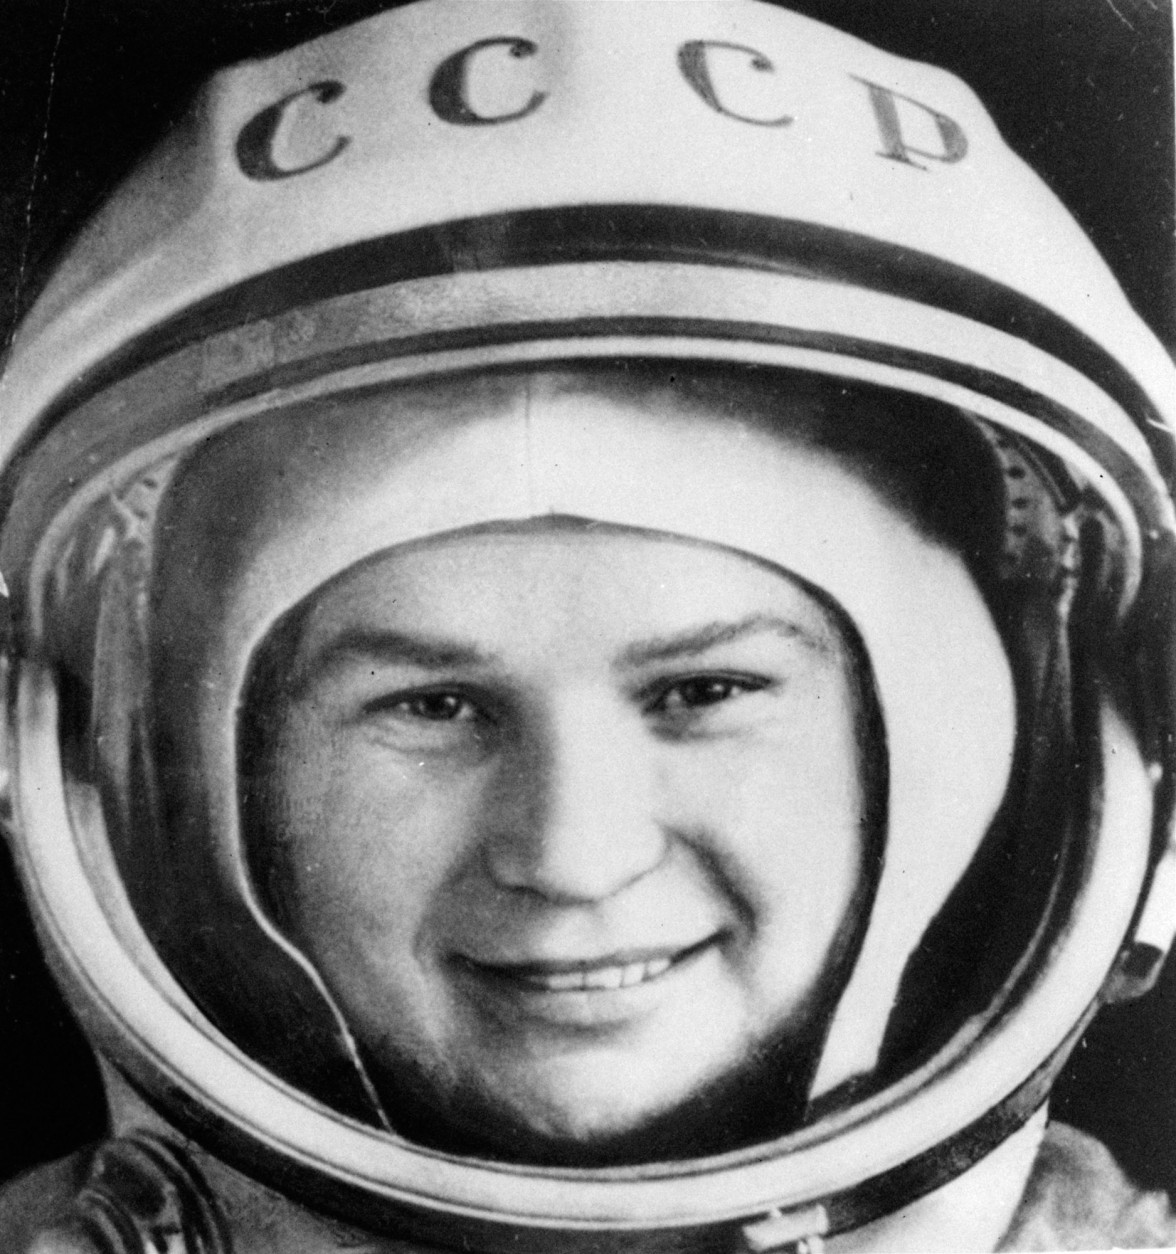 Valentina Tereshkova, who became the first woman in space in 1963, is seen in a space suit in this undated file photo. Tereshkova's three-day flight, which started June 16, 1963, further strengthened the prestige of the Soviet space program after Yuri Gagarin became the first man in space in 1961. (AP Photo/  ITAR-TASS )